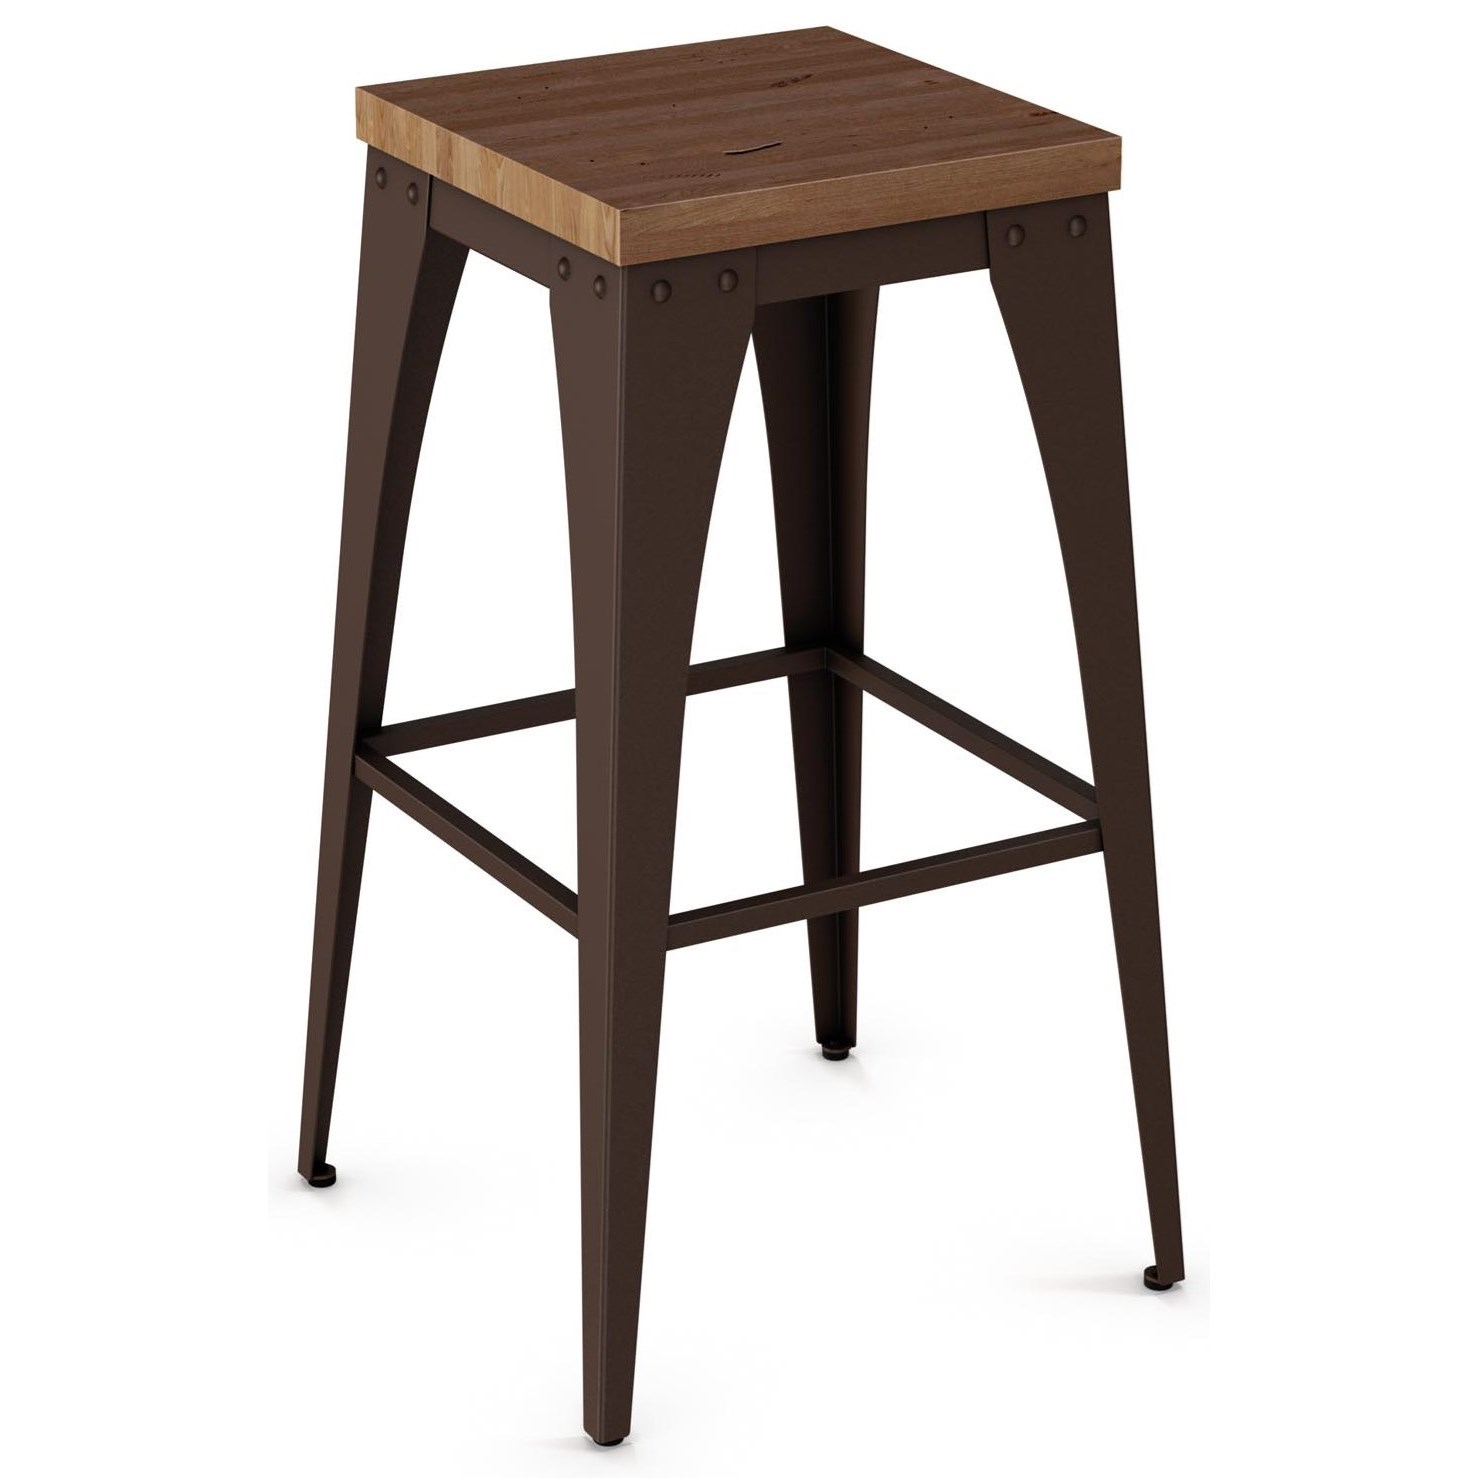 """Industrial 30"""" Upright Stool with Wood Seat by Amisco at Rooms and Rest"""